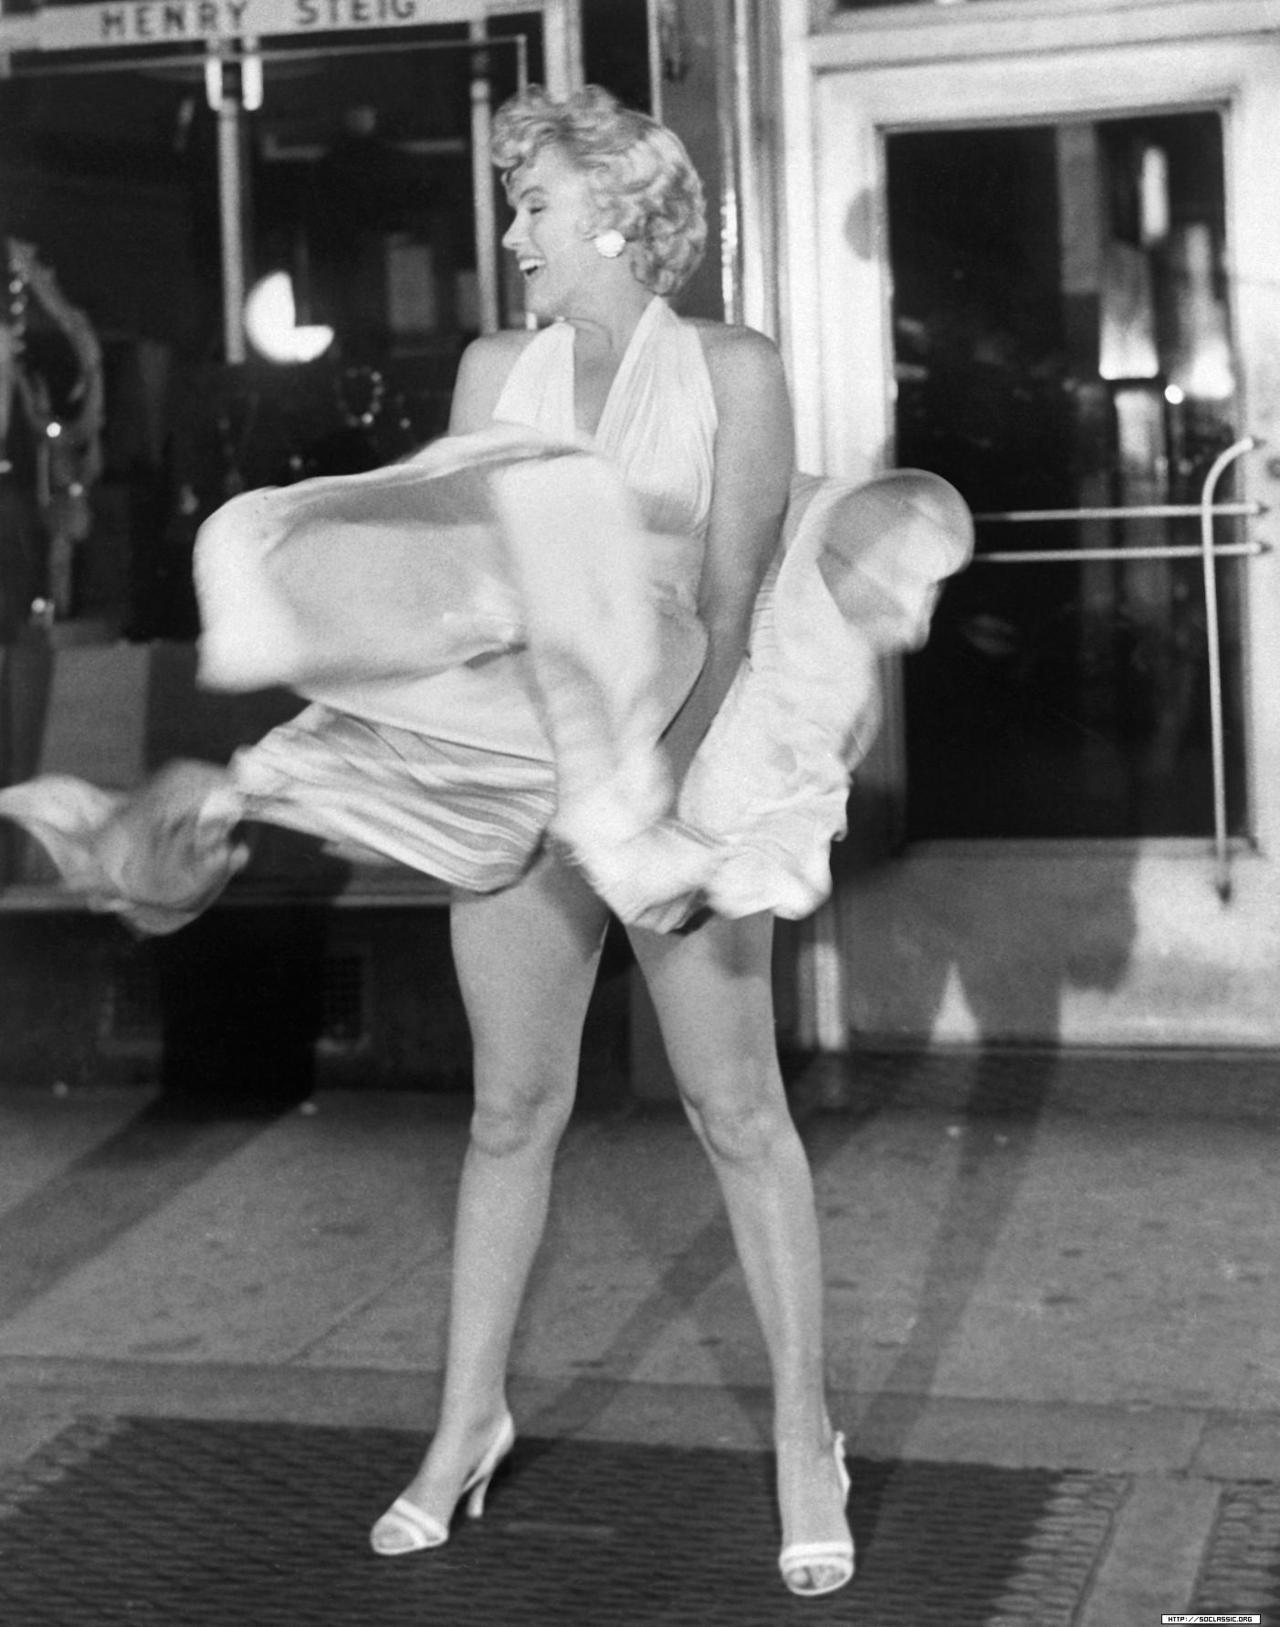 Marilyn Monroe filming the infamous subway grate scene in The Seven Year Itch in 1954